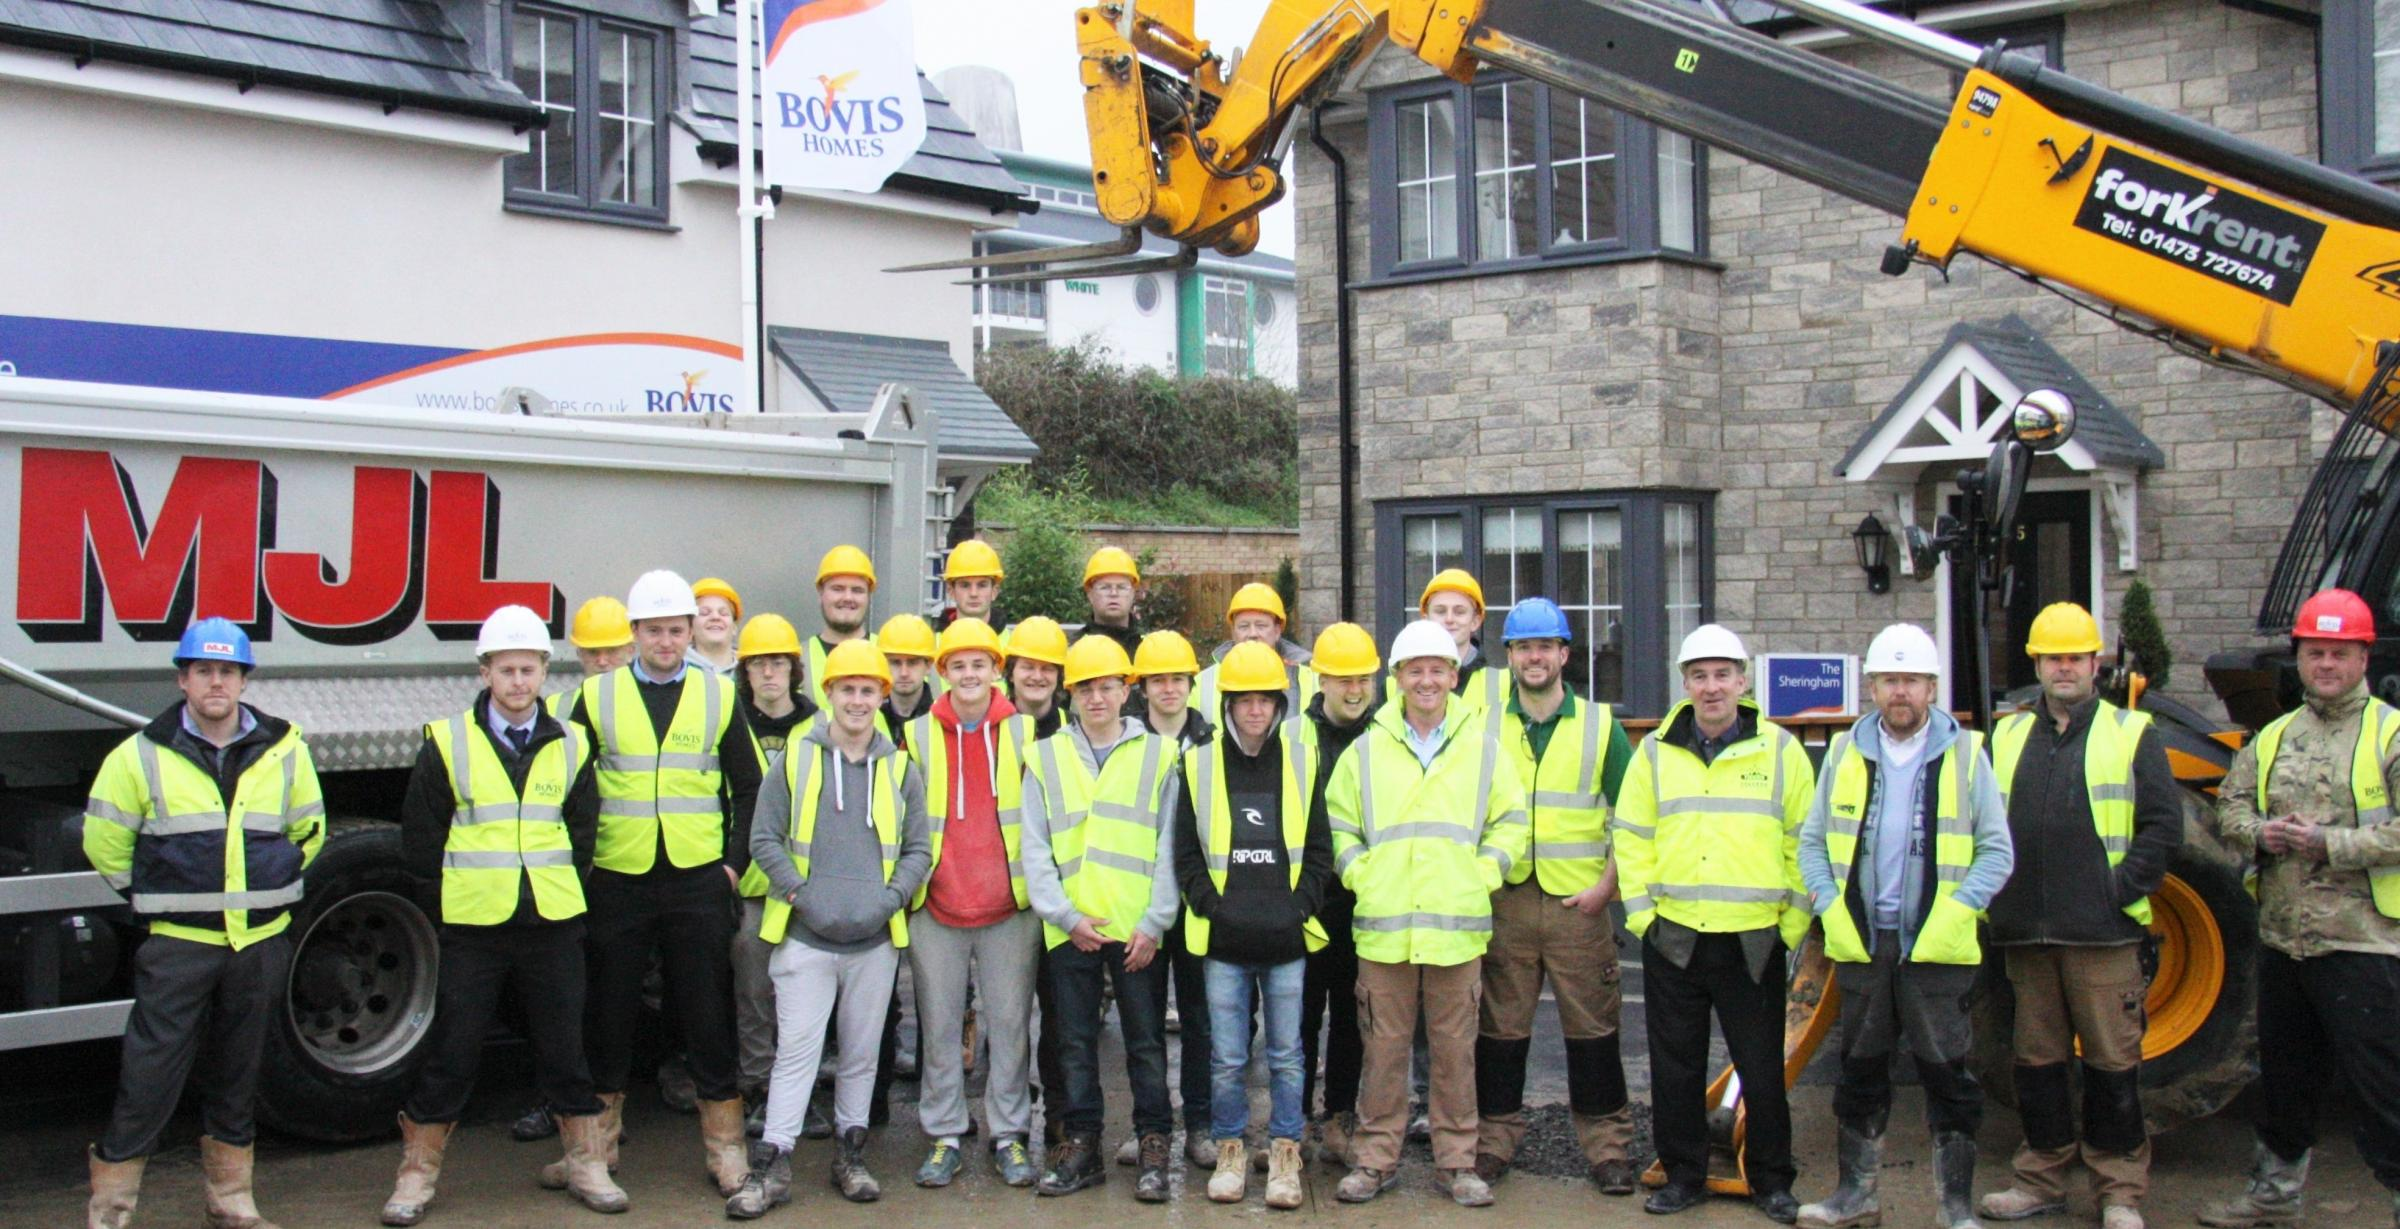 MJL Bovis Homes and Truro and Penwith College celebrate their success in working together